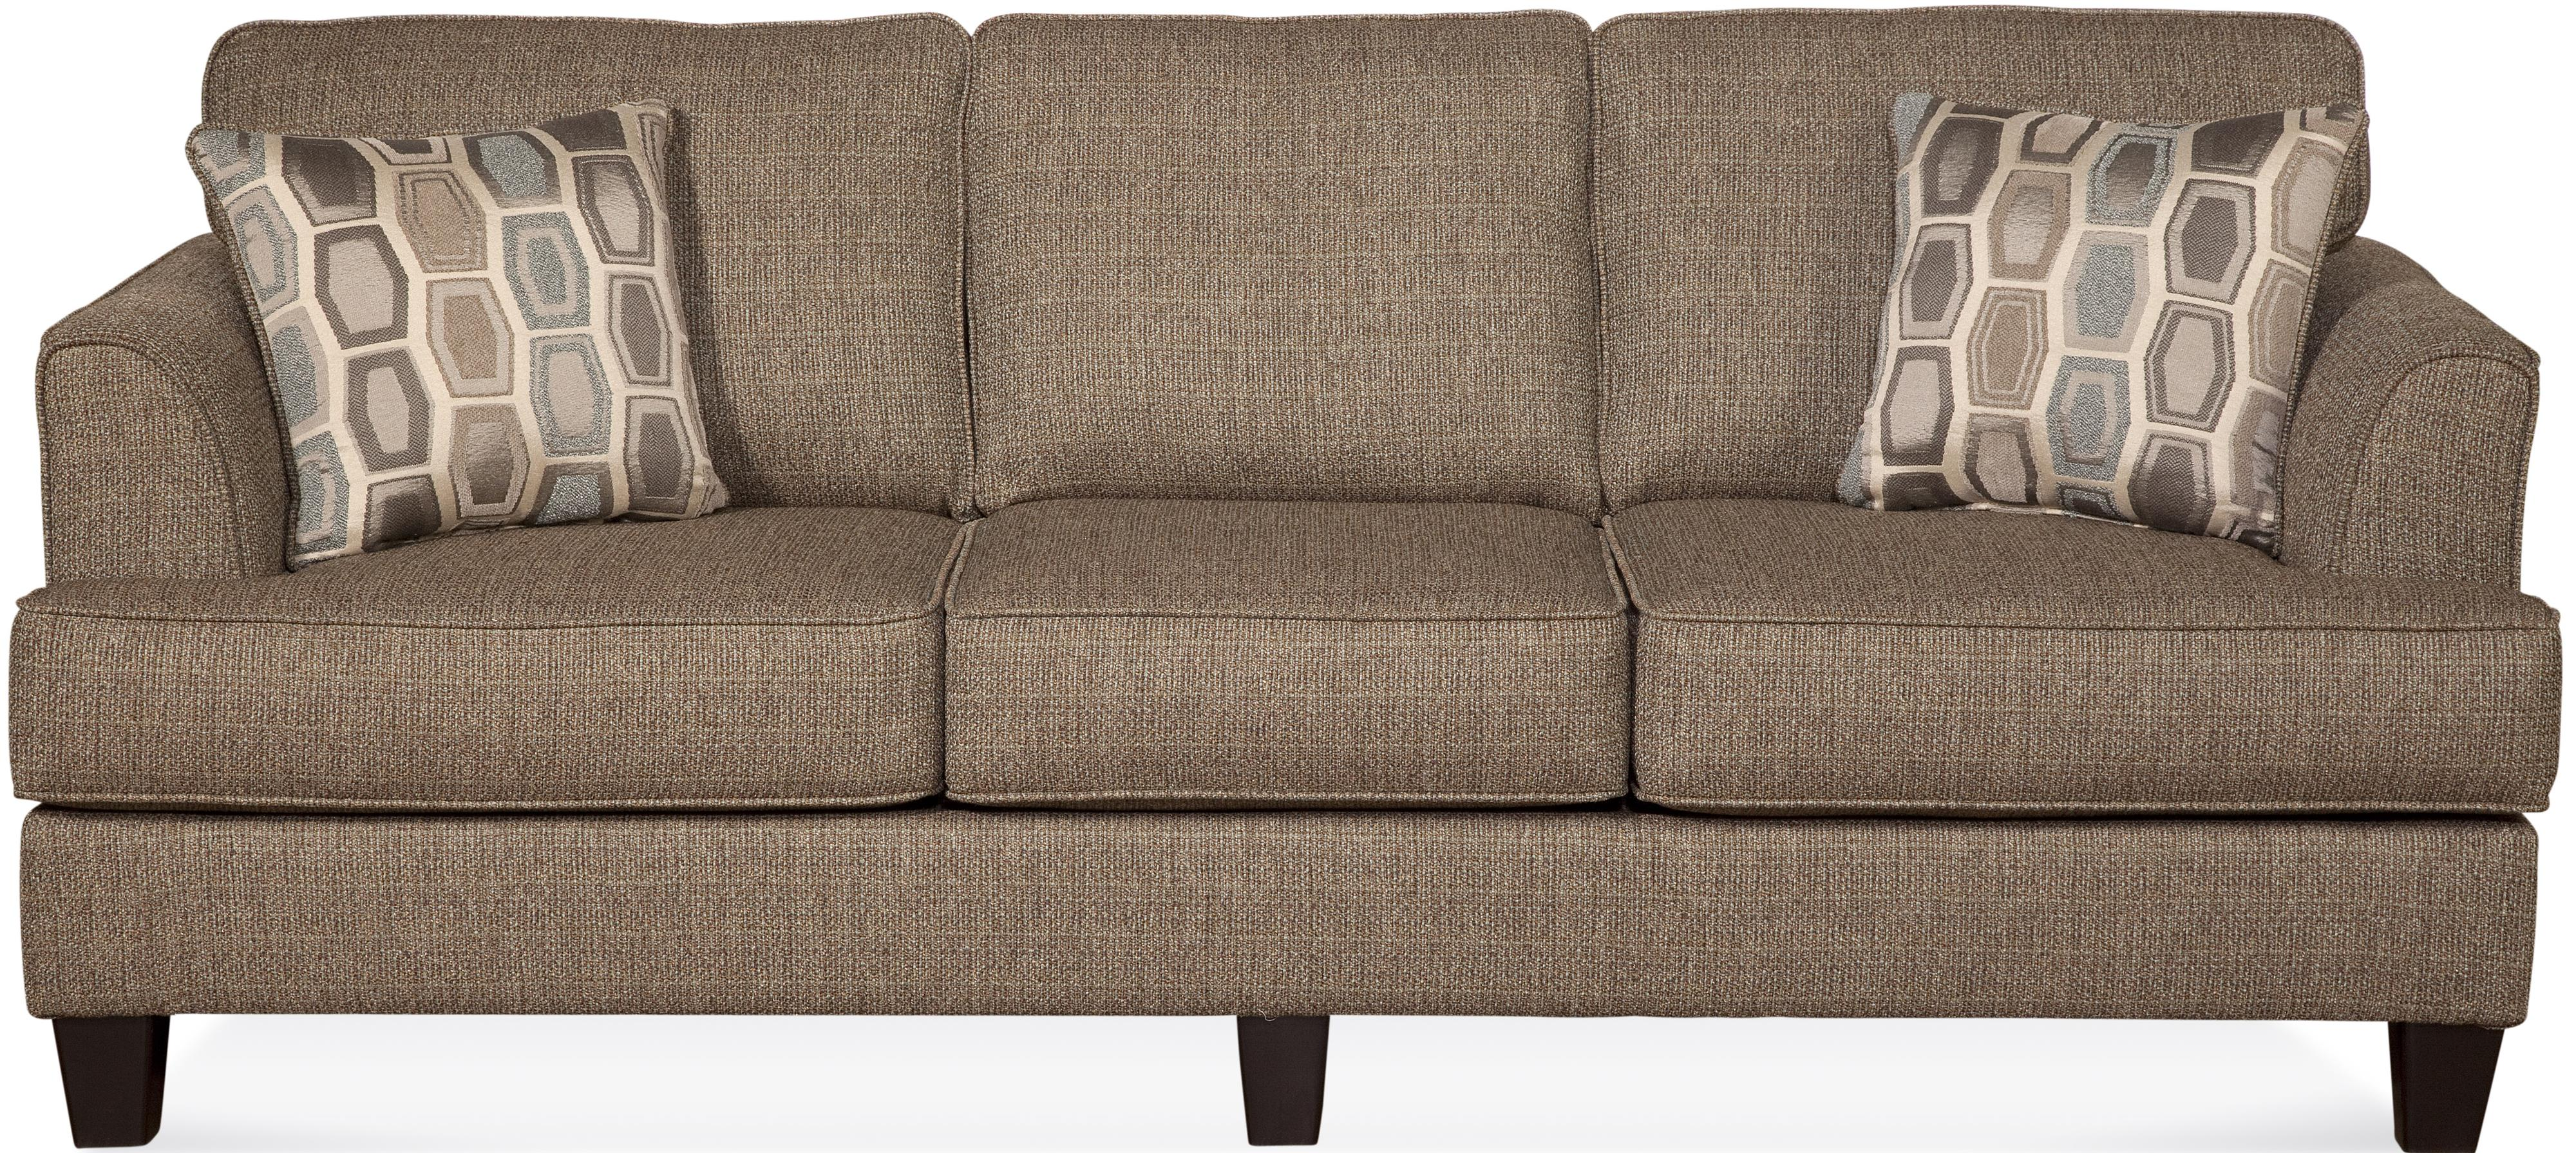 Serta Upholstery by Hughes Furniture 5600 Contemporary Sofa with